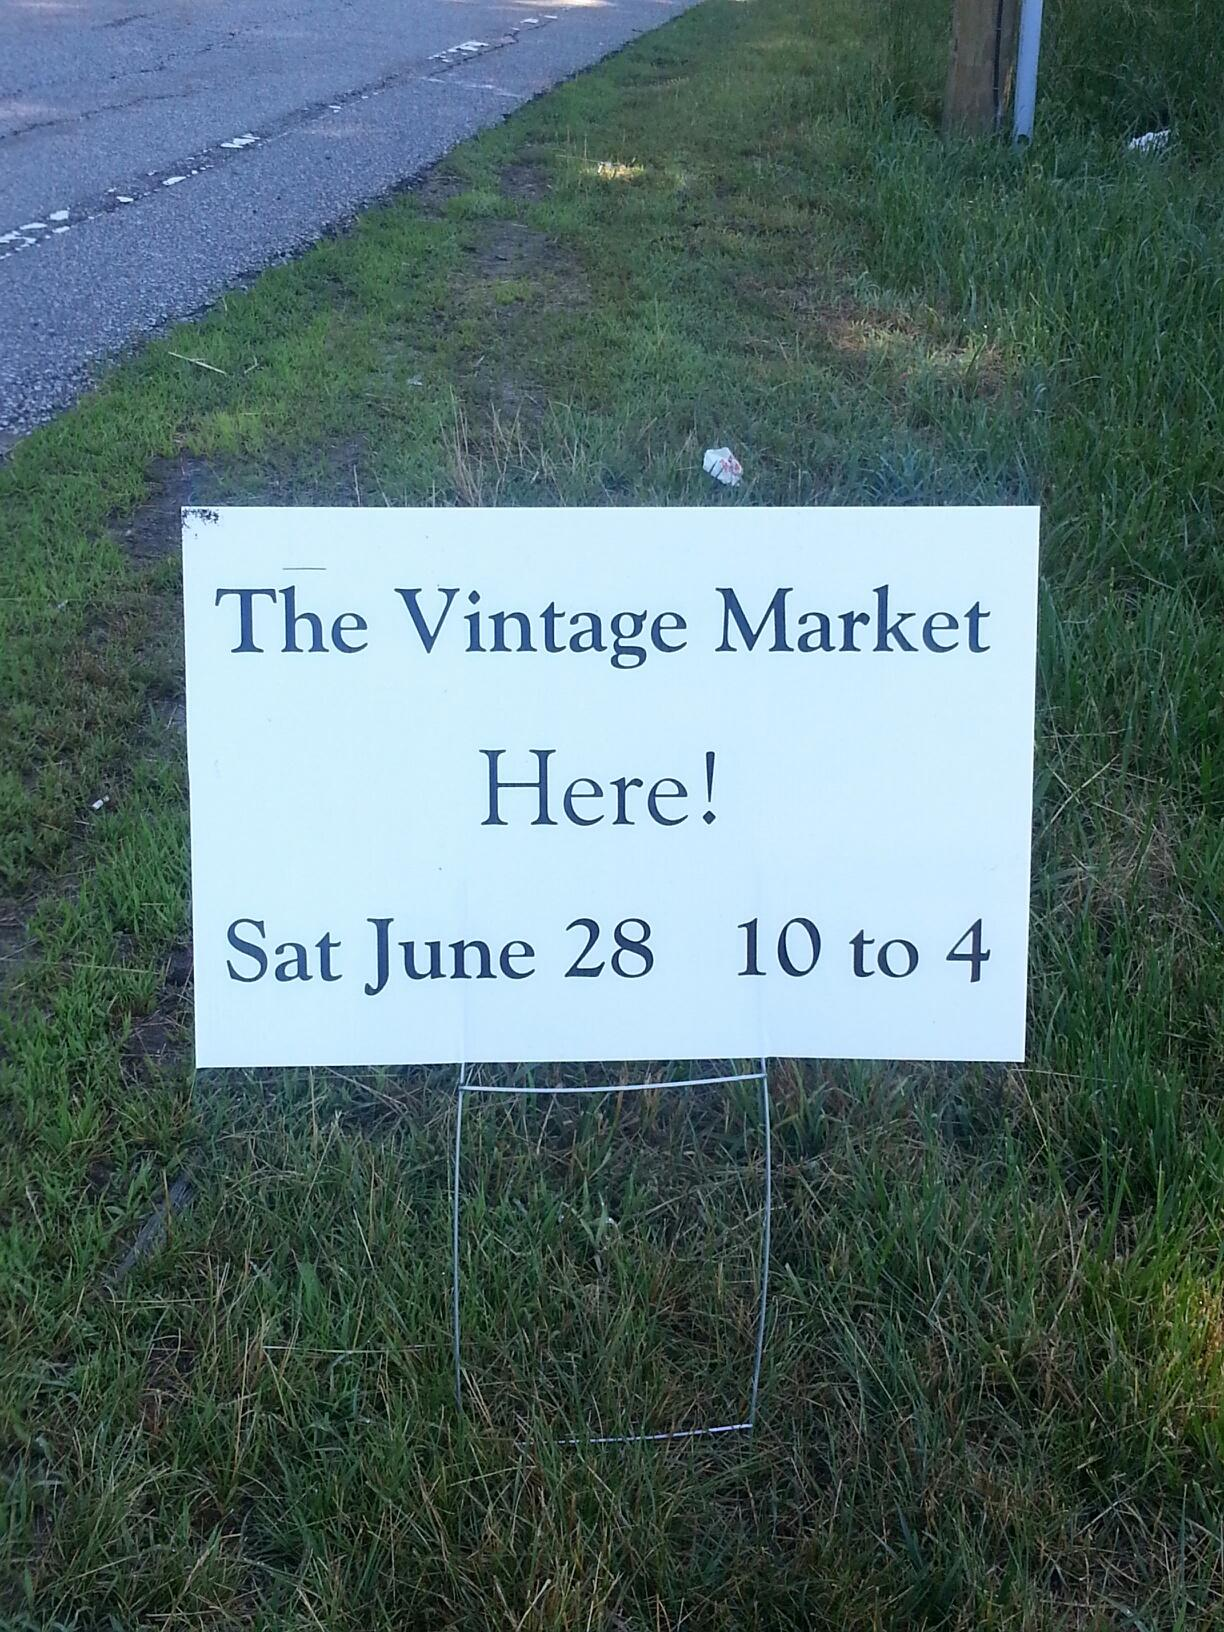 The Vintage Market Salem, CT